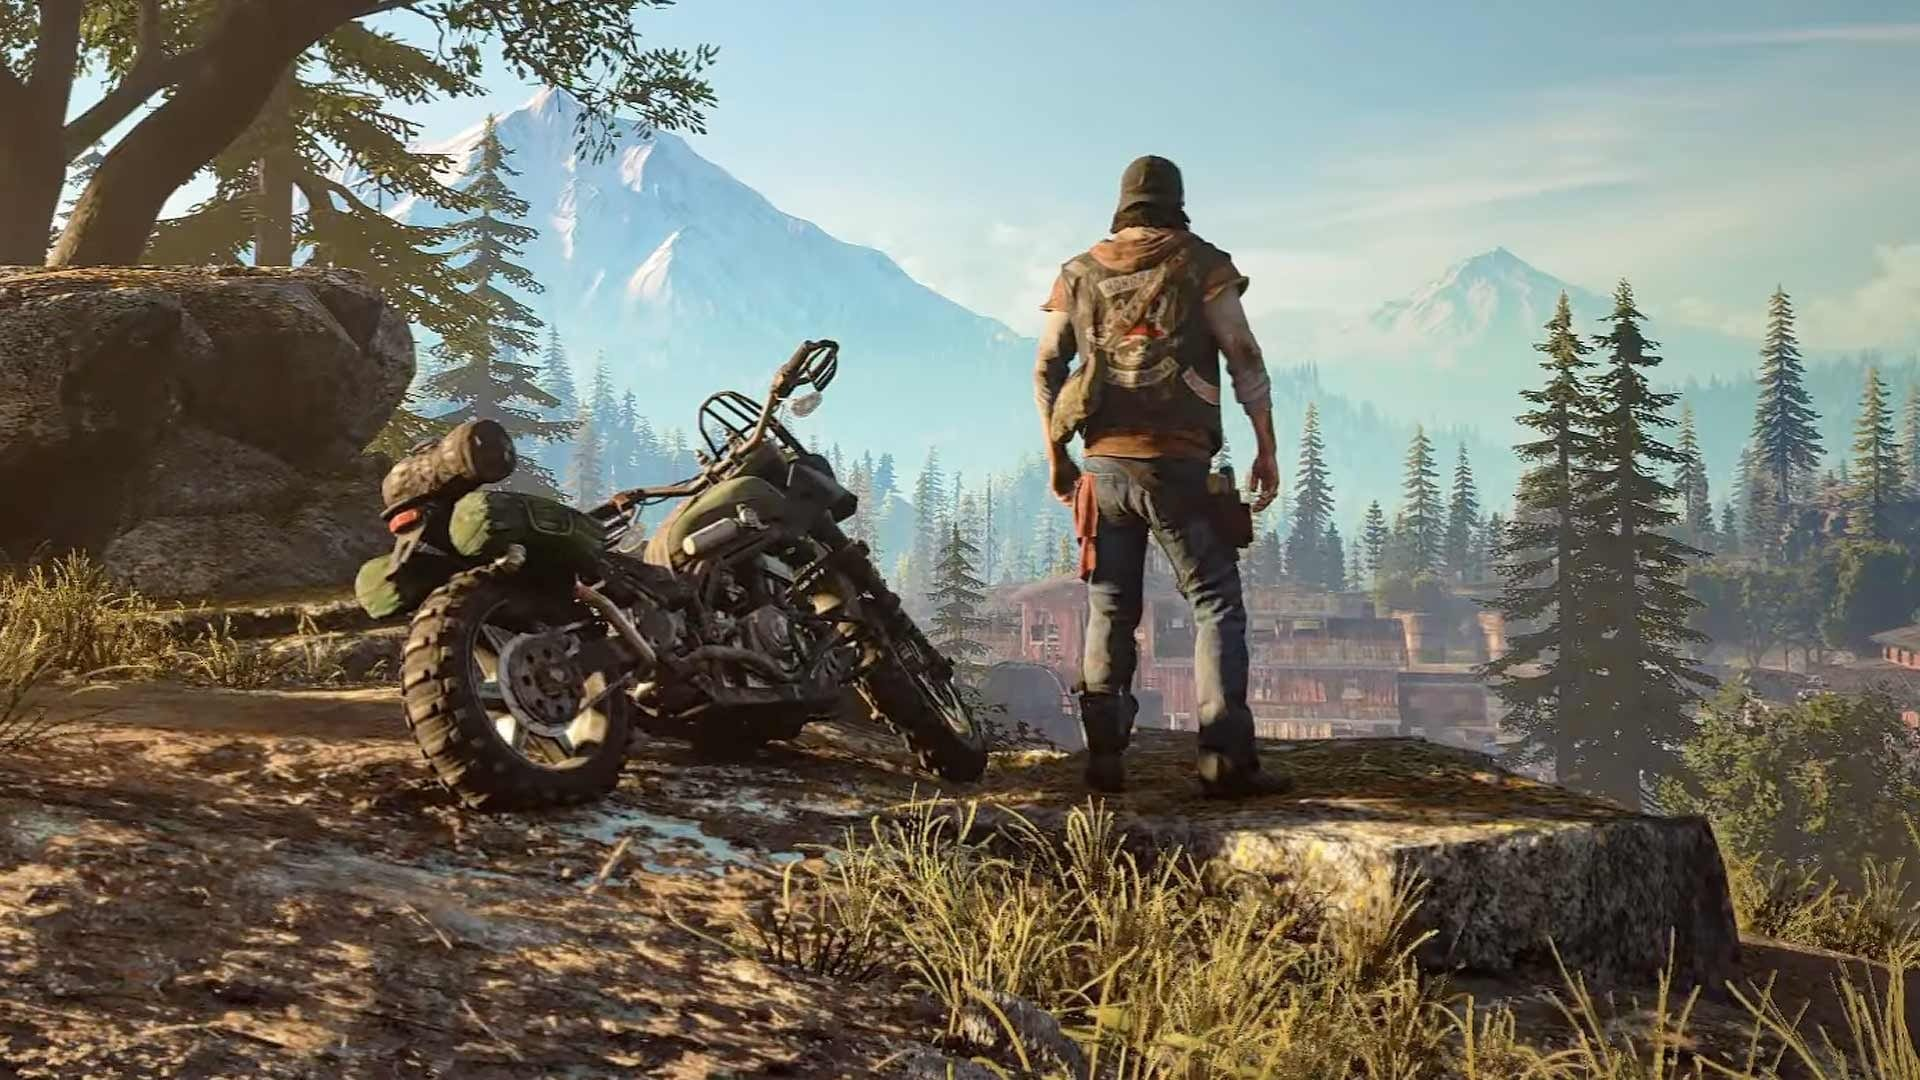 image from days gone game